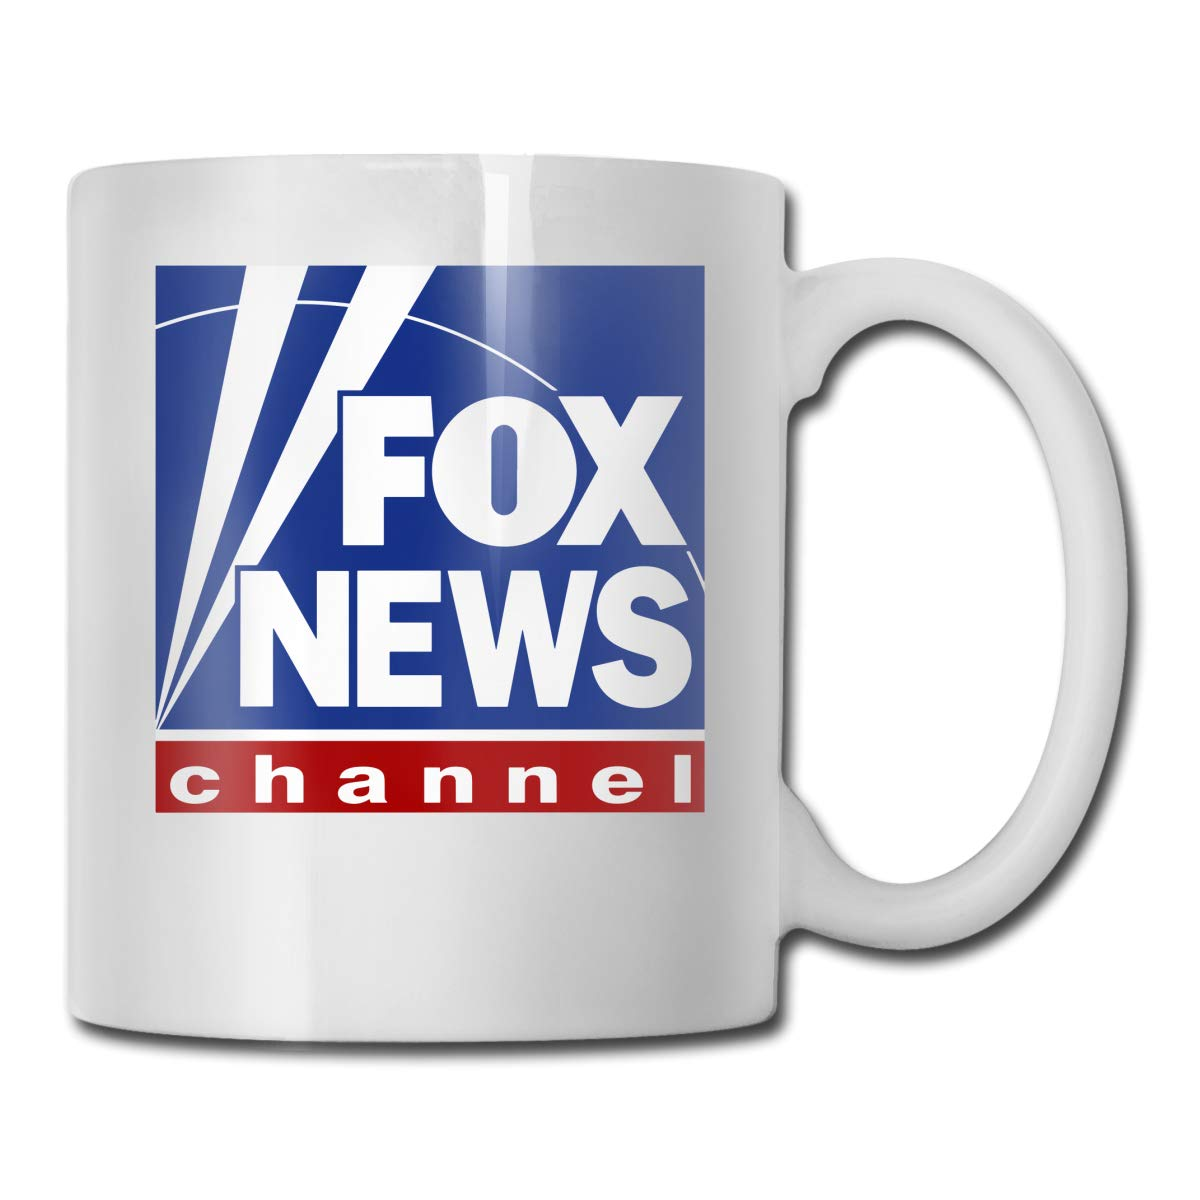 Amazon.com: Fox News Channel Logo Coffee Mug Best Gift For.